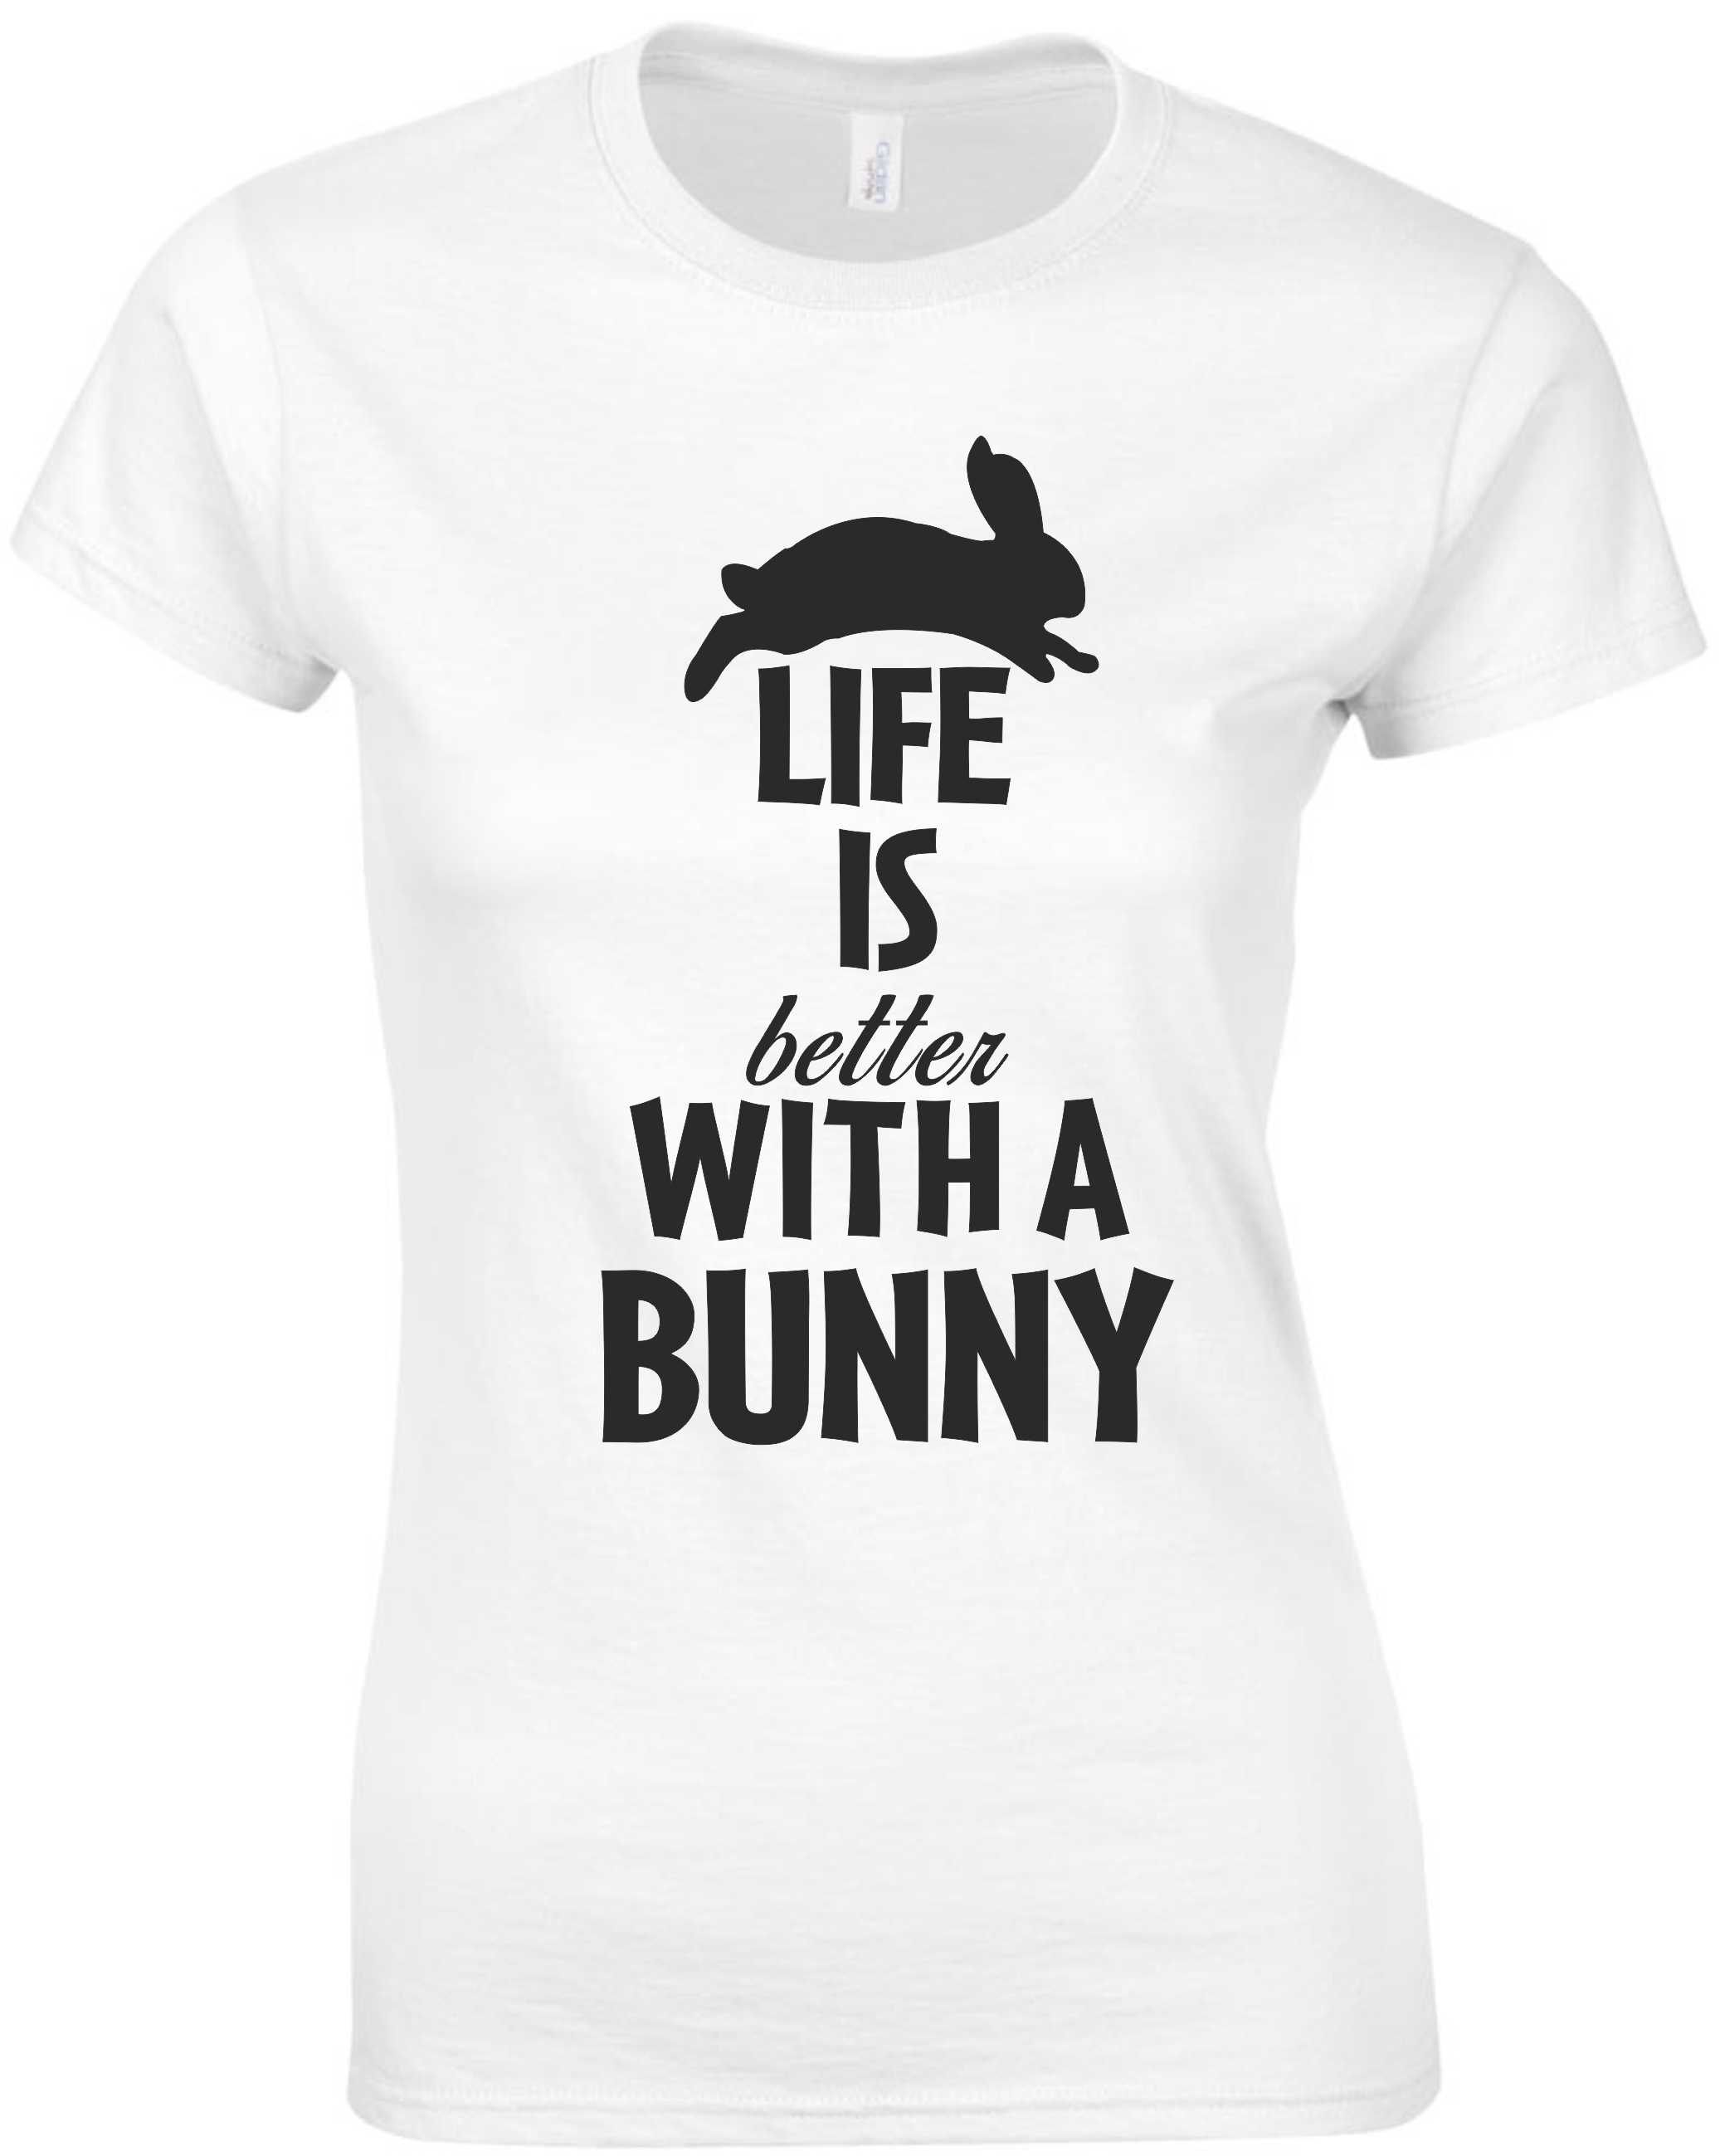 LIFE IS BETTER WITH A BUNNY PÓLÓ